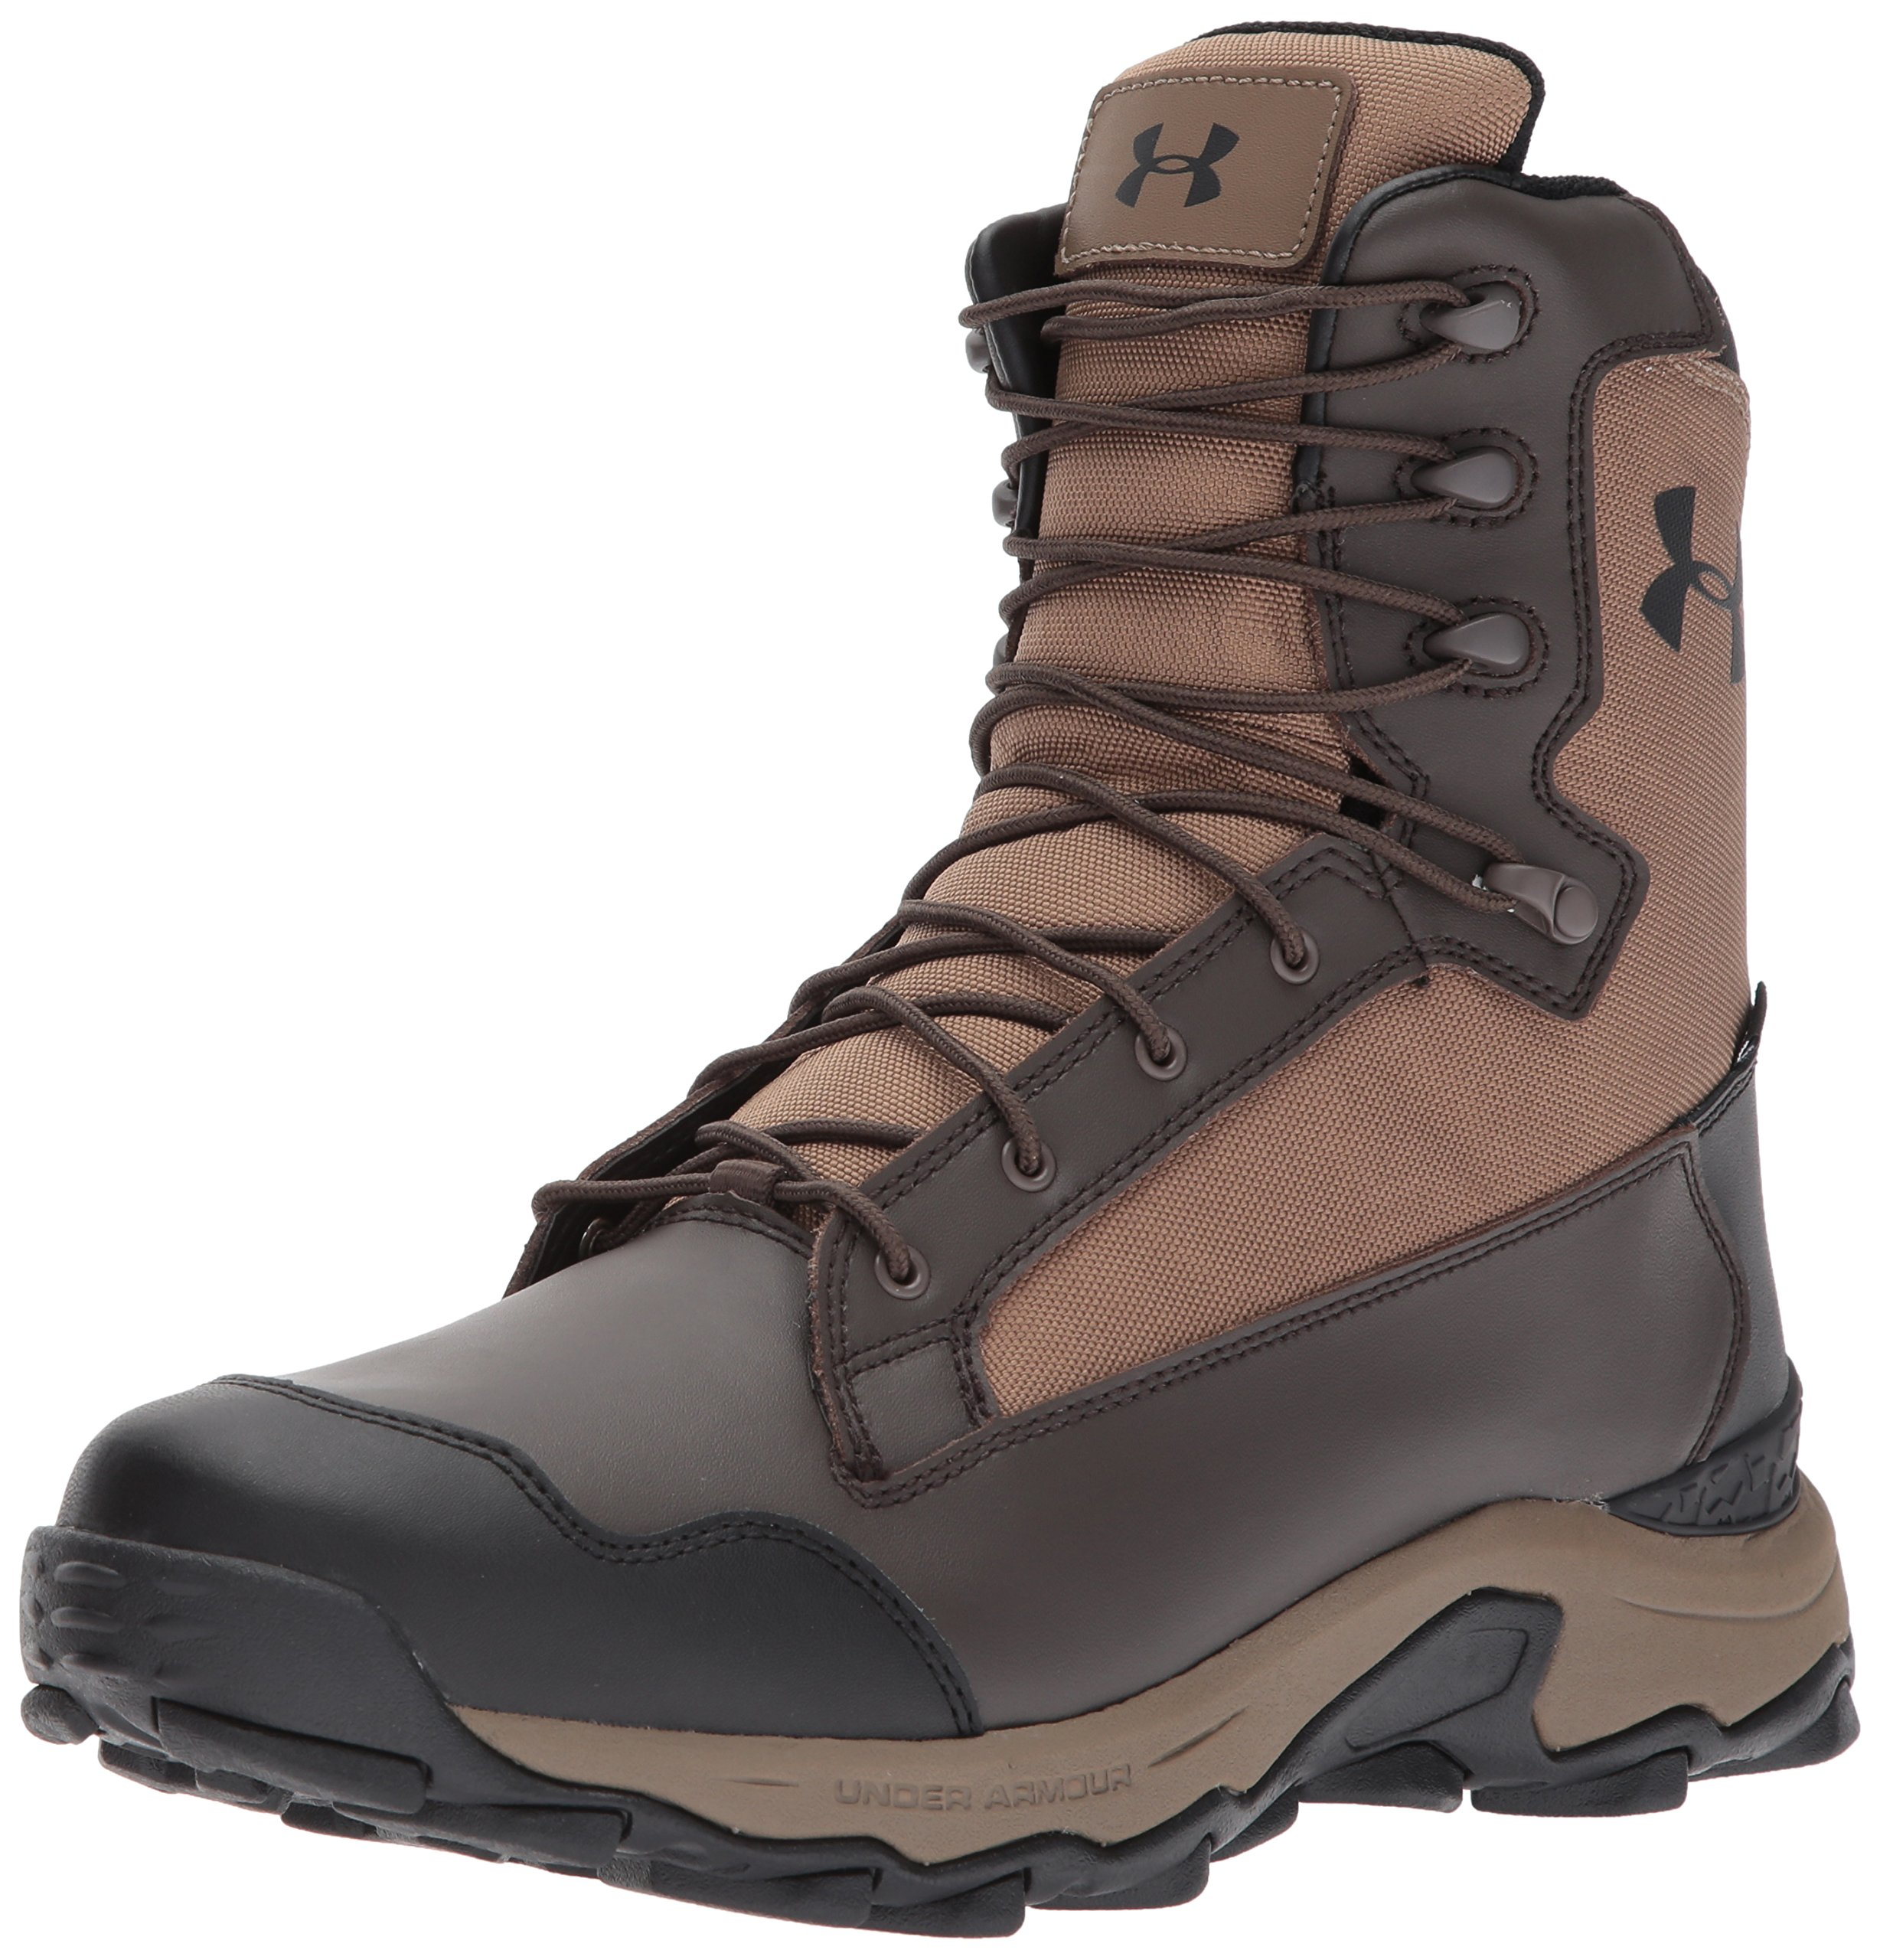 Under Armour Men's Tanger Waterproof-400G Ankle Boot, Uniform (225)/Maverick Brown, 8